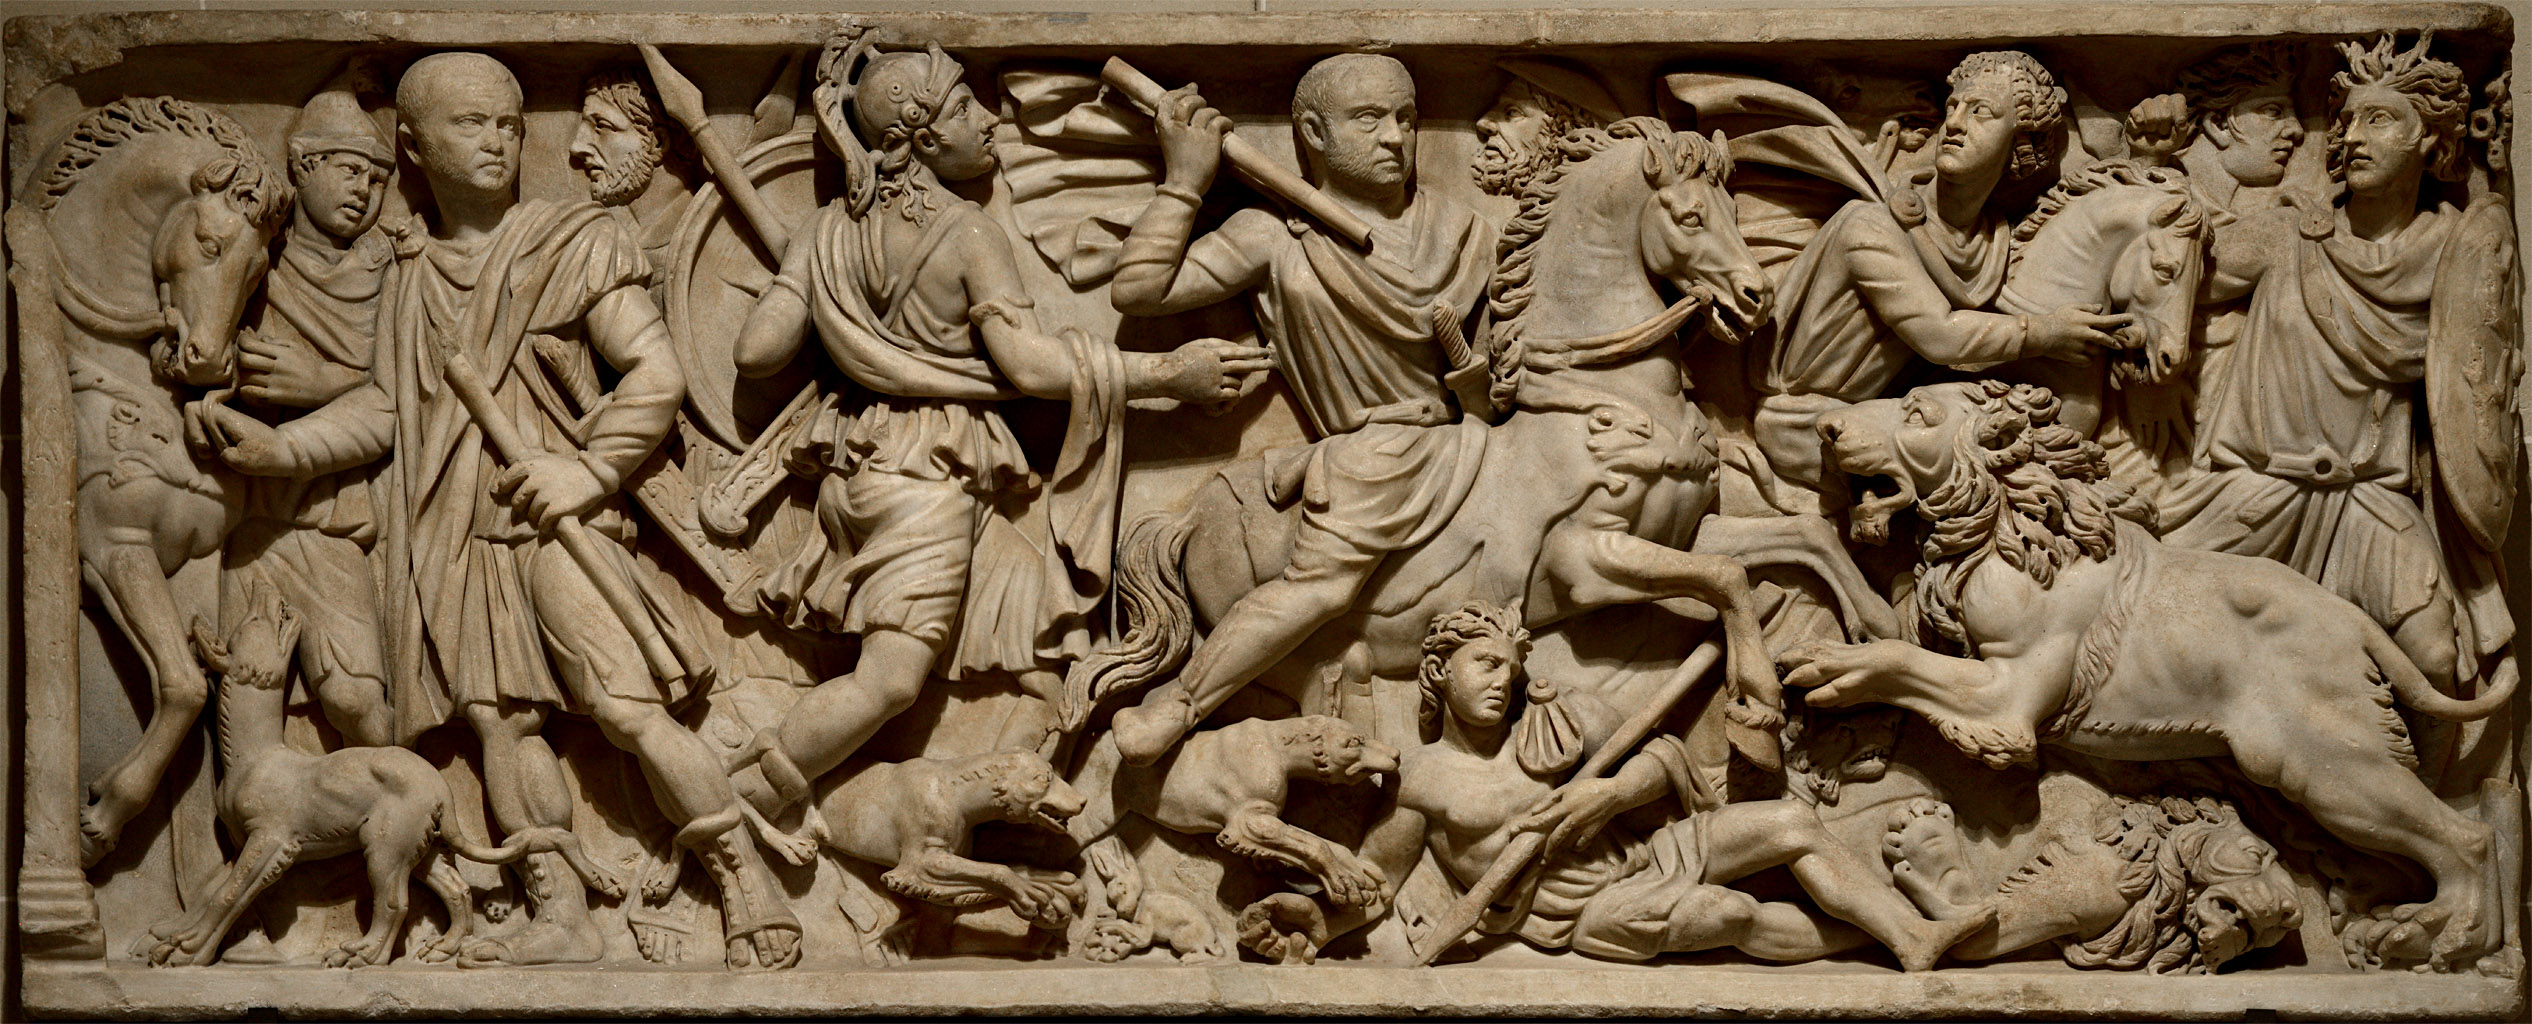 Front relief of a sarcophagus with a scene of lions hunting. Marble. First half of 3rd cent. CE. Inv. No. MR 739 / Ma 346 Paris, Louvre Museum